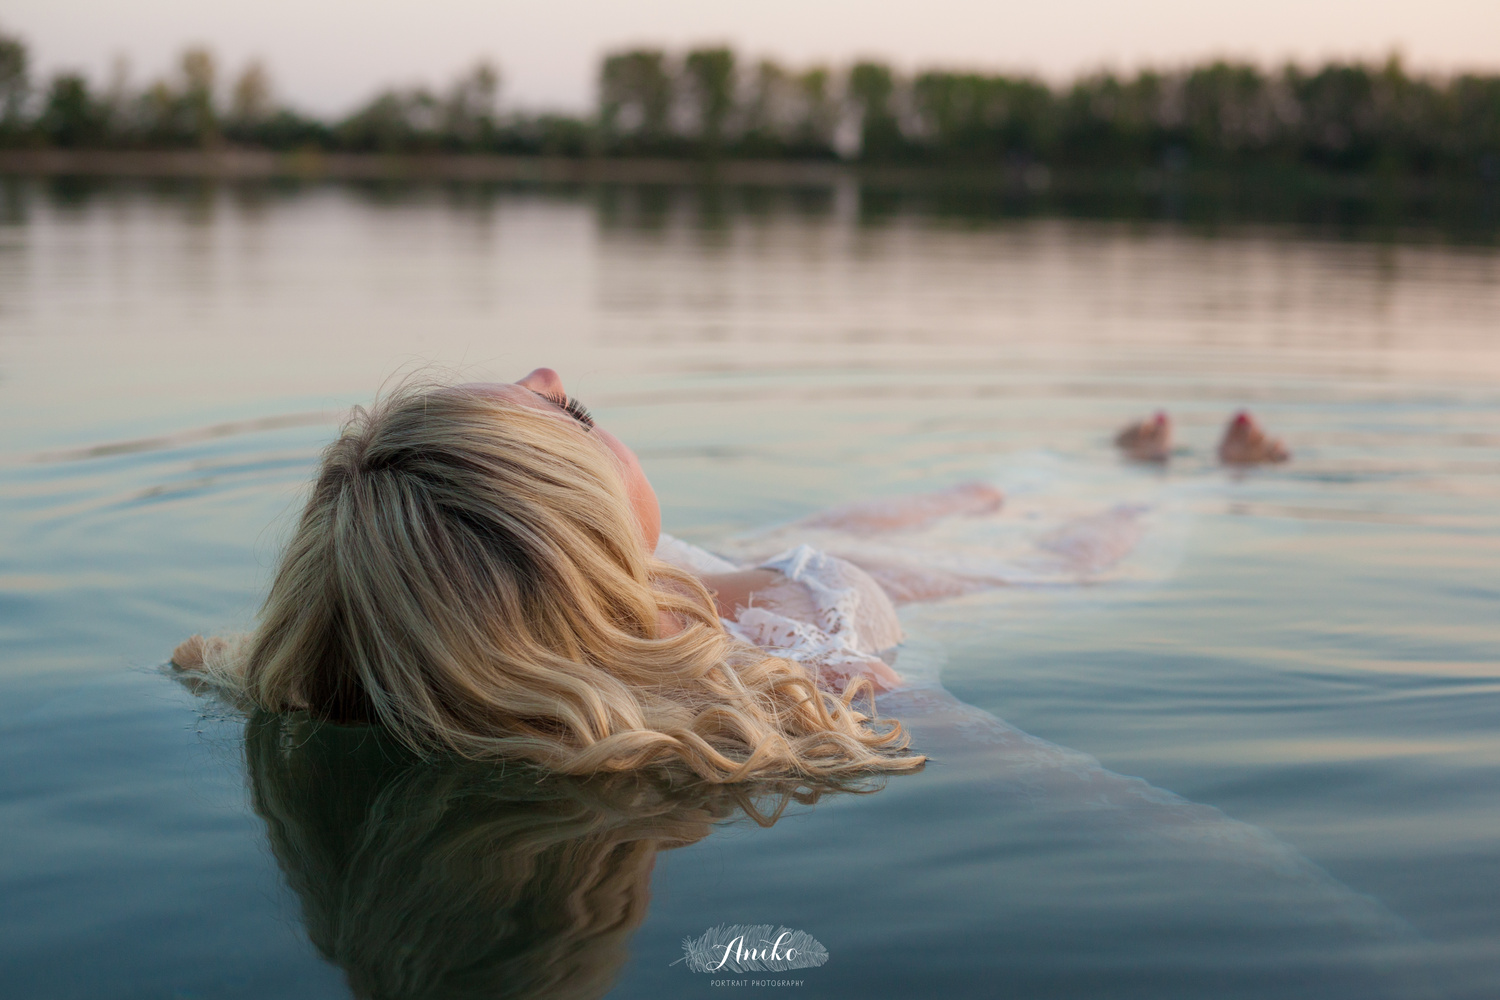 Untitled 7 by Aniko Portrait Photography